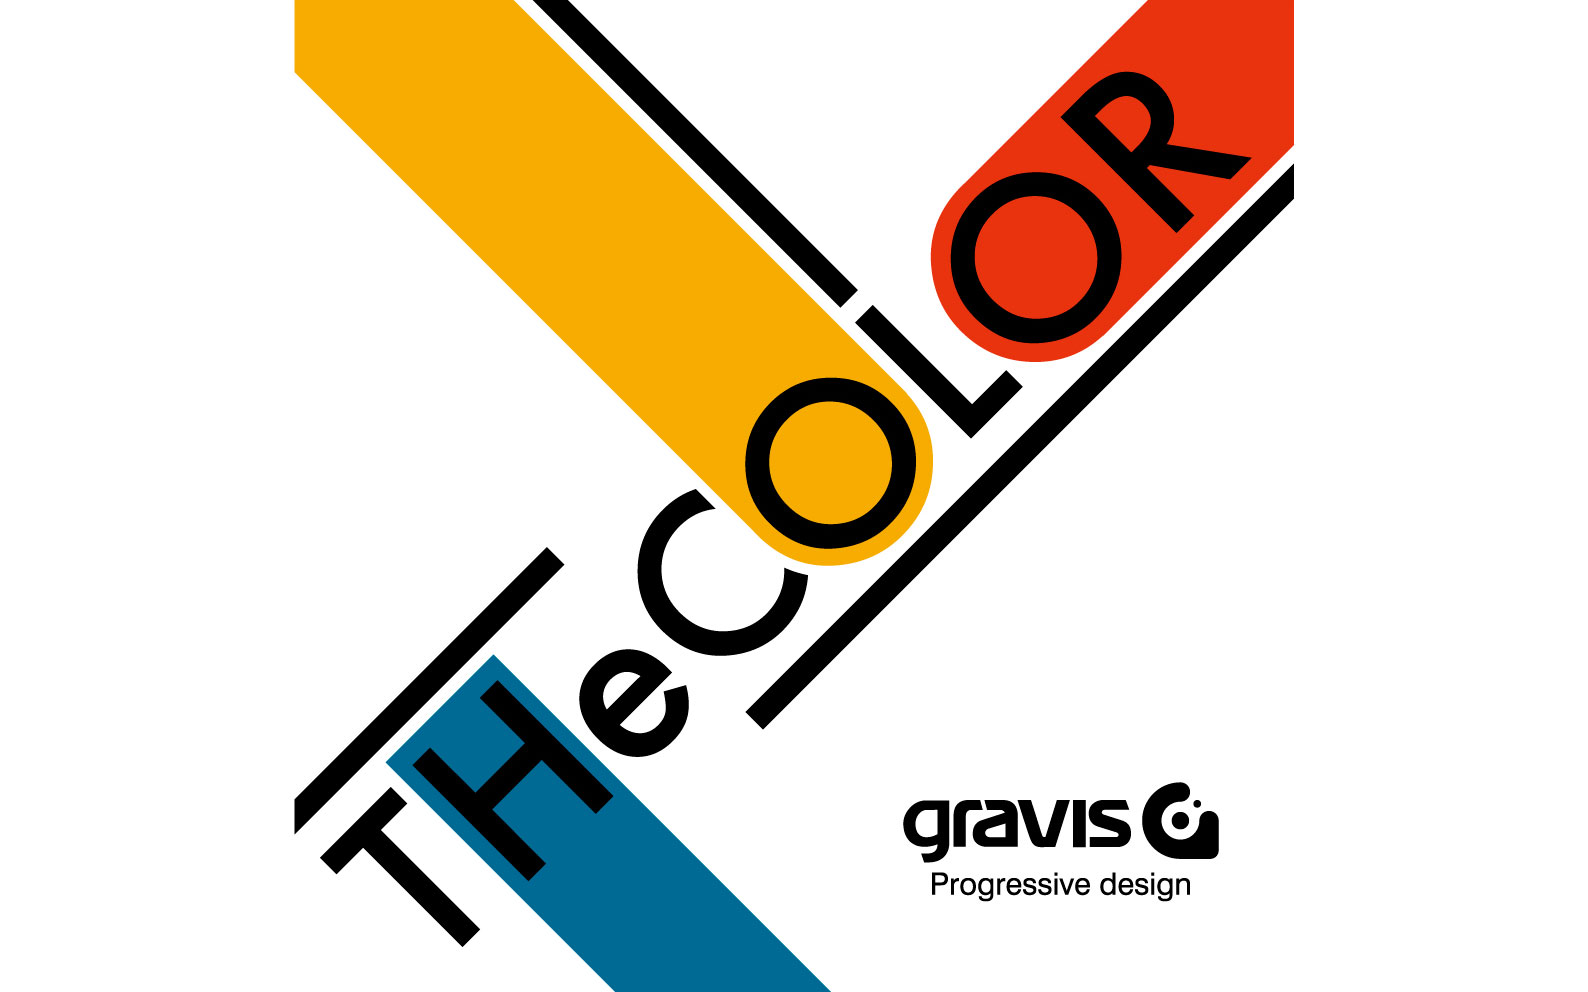 THE_COLOR_GRAVIS_th